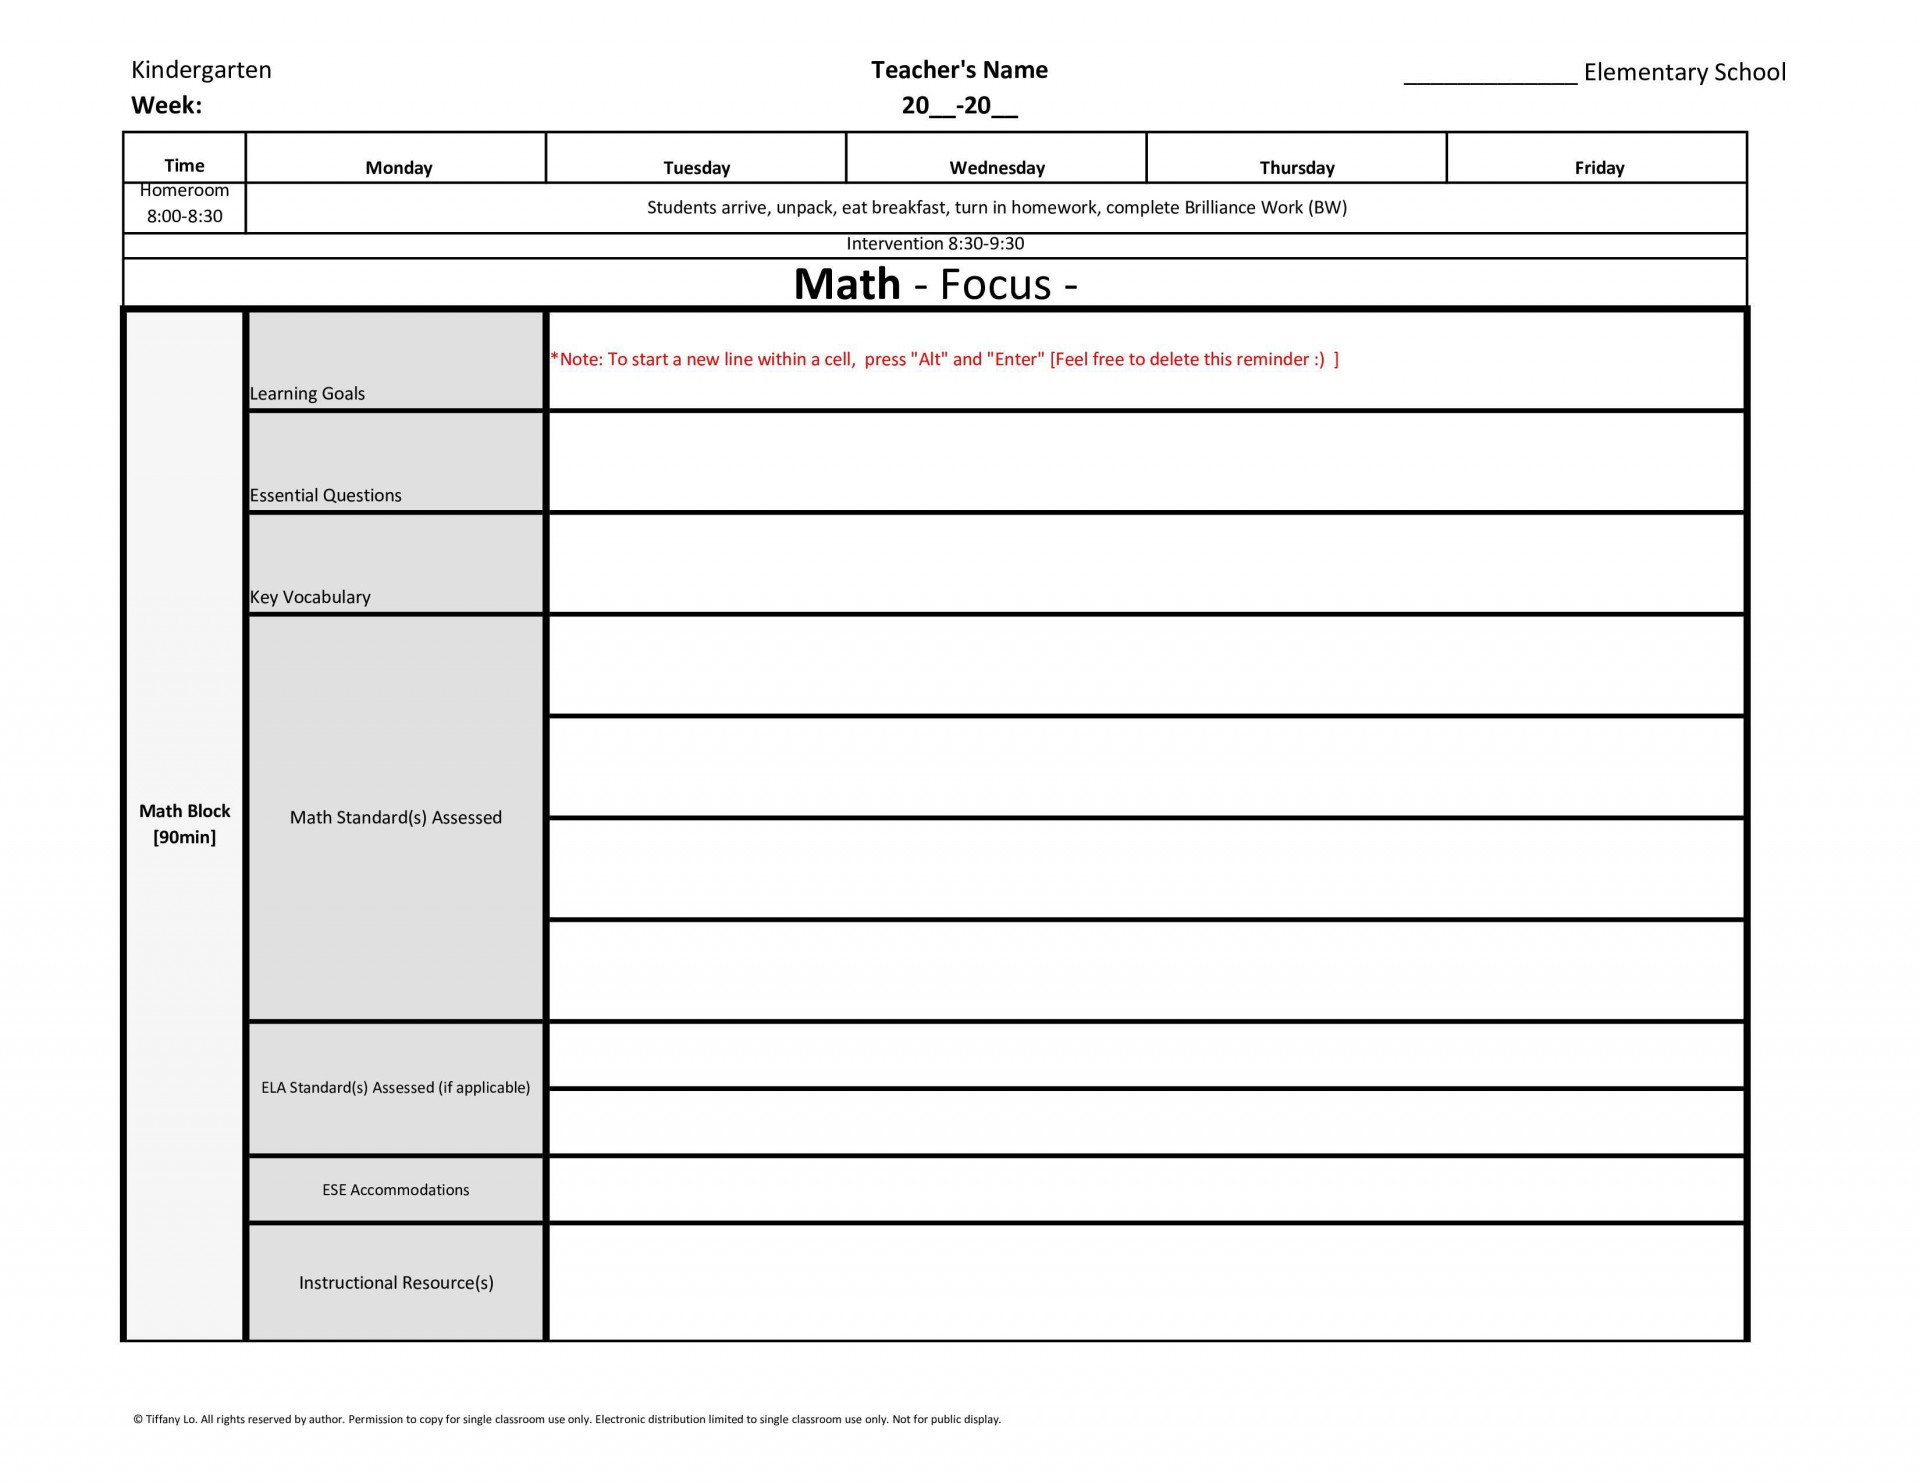 003 Awesome Editable Lesson Plan Template Image  Templates For Preschool Word Free1920